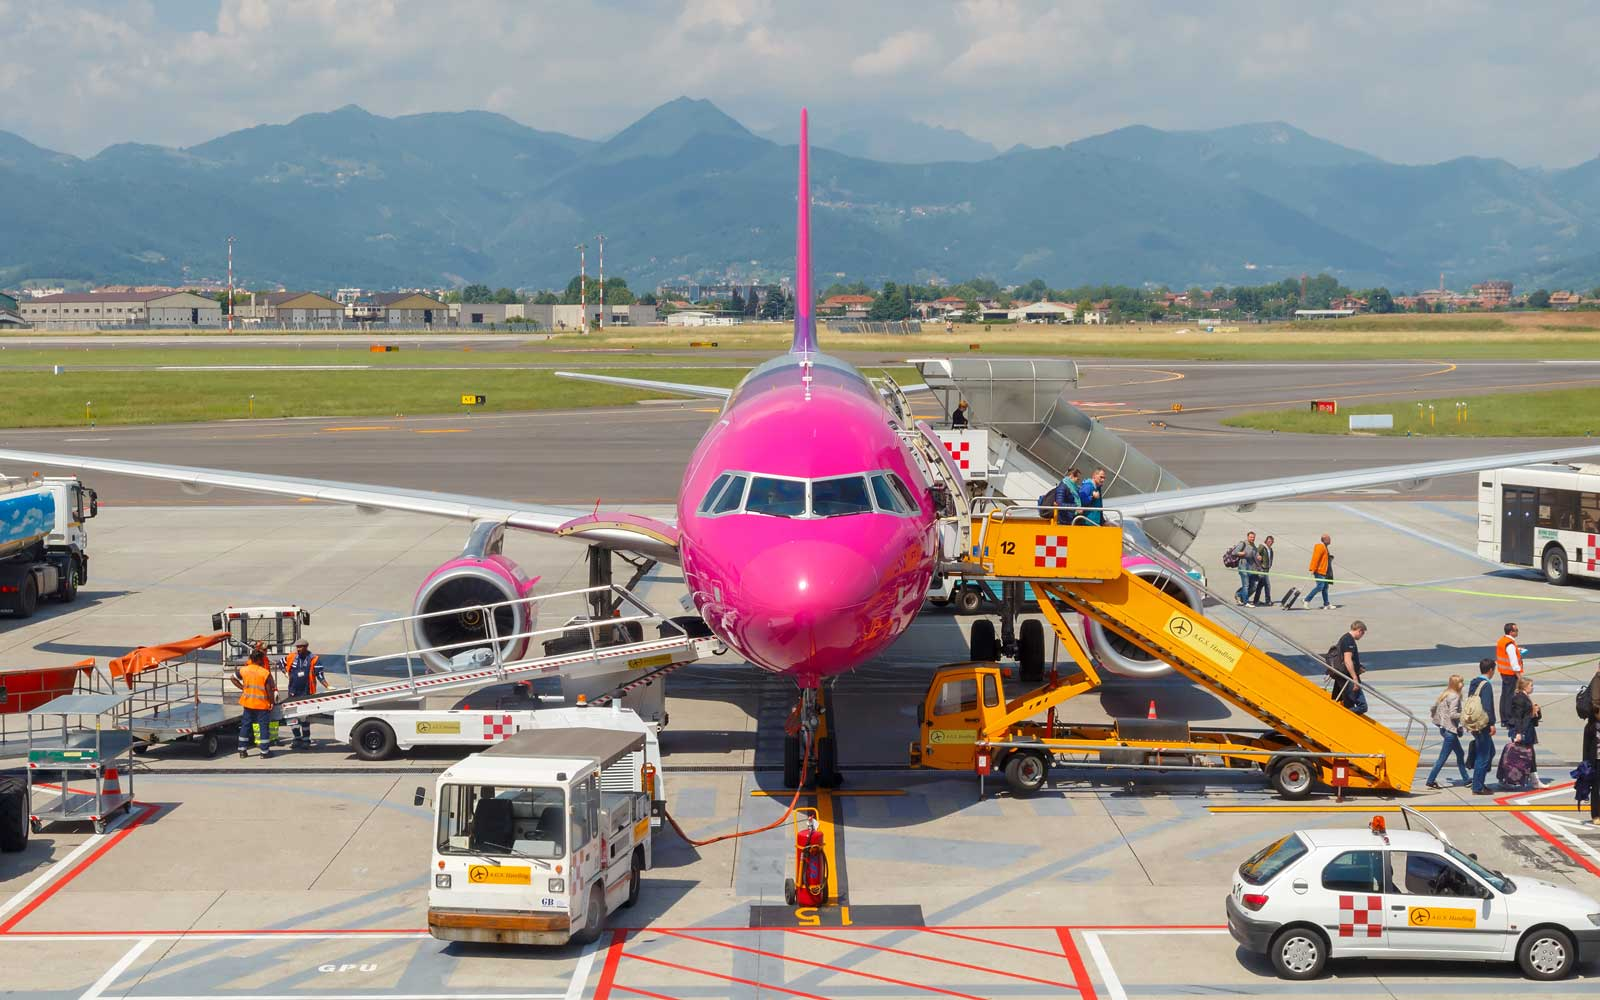 Aircraft Wizz Air aviation company at the airport of Bergamo, Italy